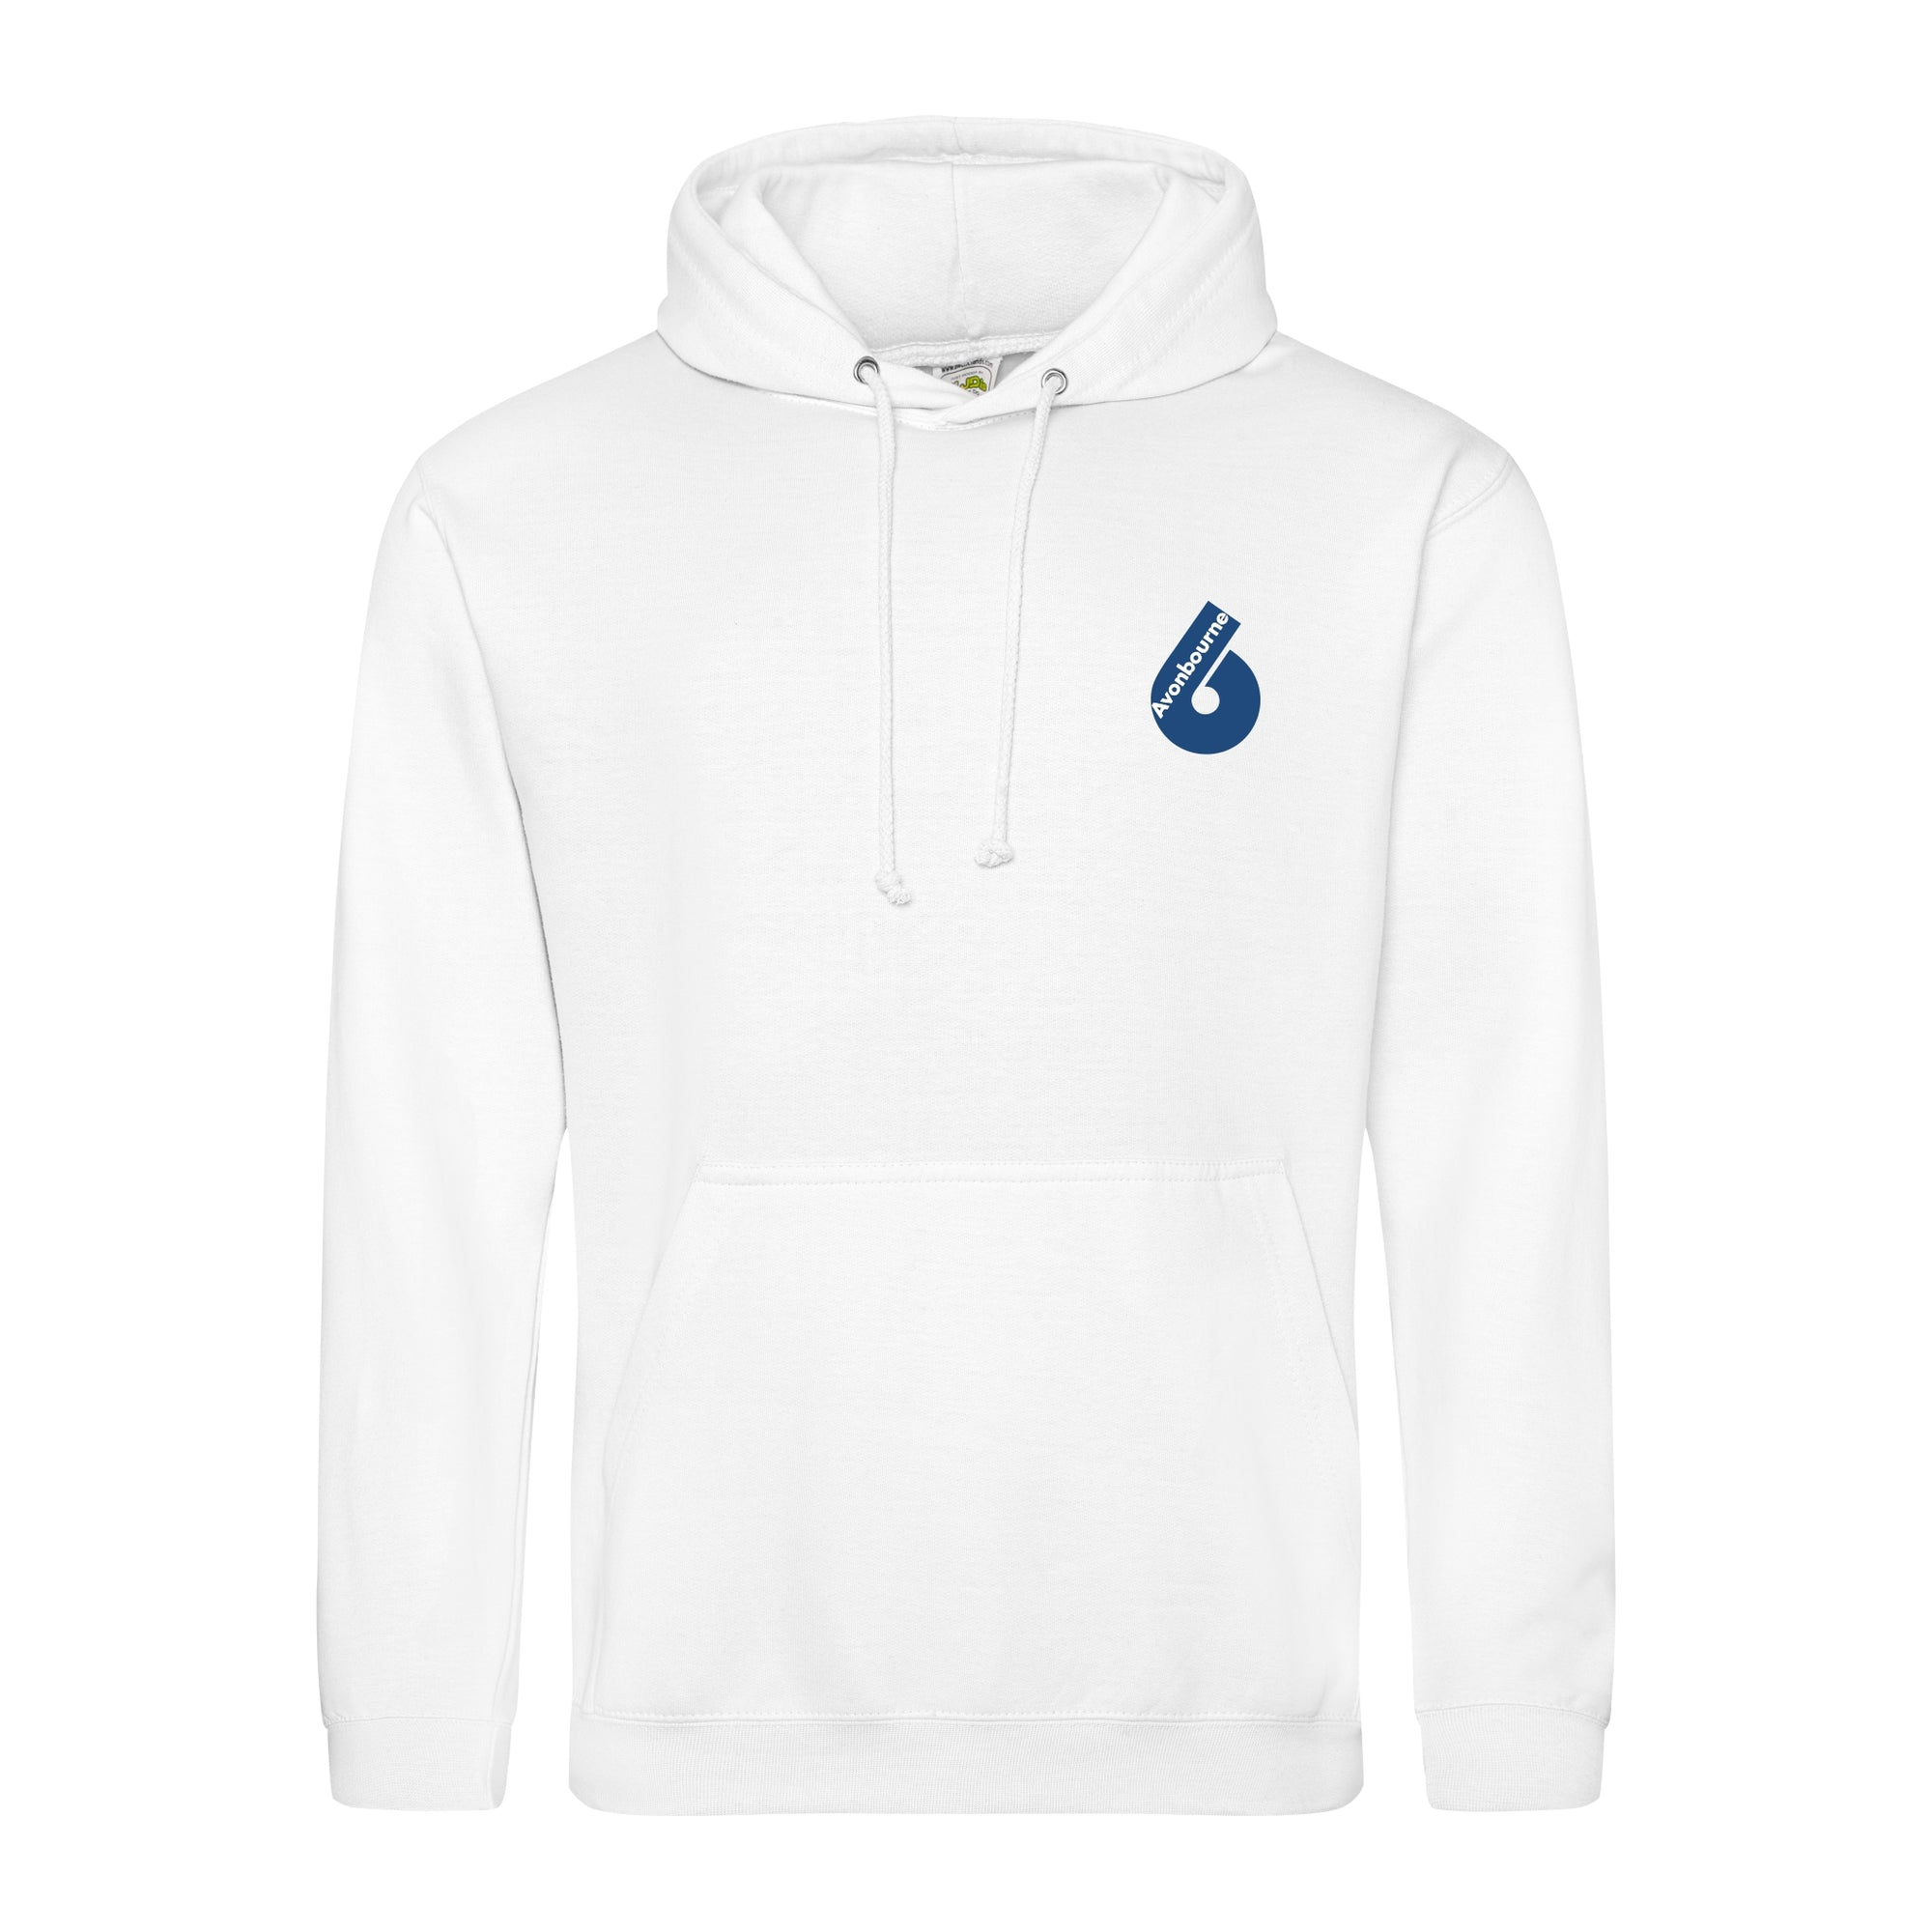 Avonbourne 6th form leavers hoody in white with sixth form logo on left chest